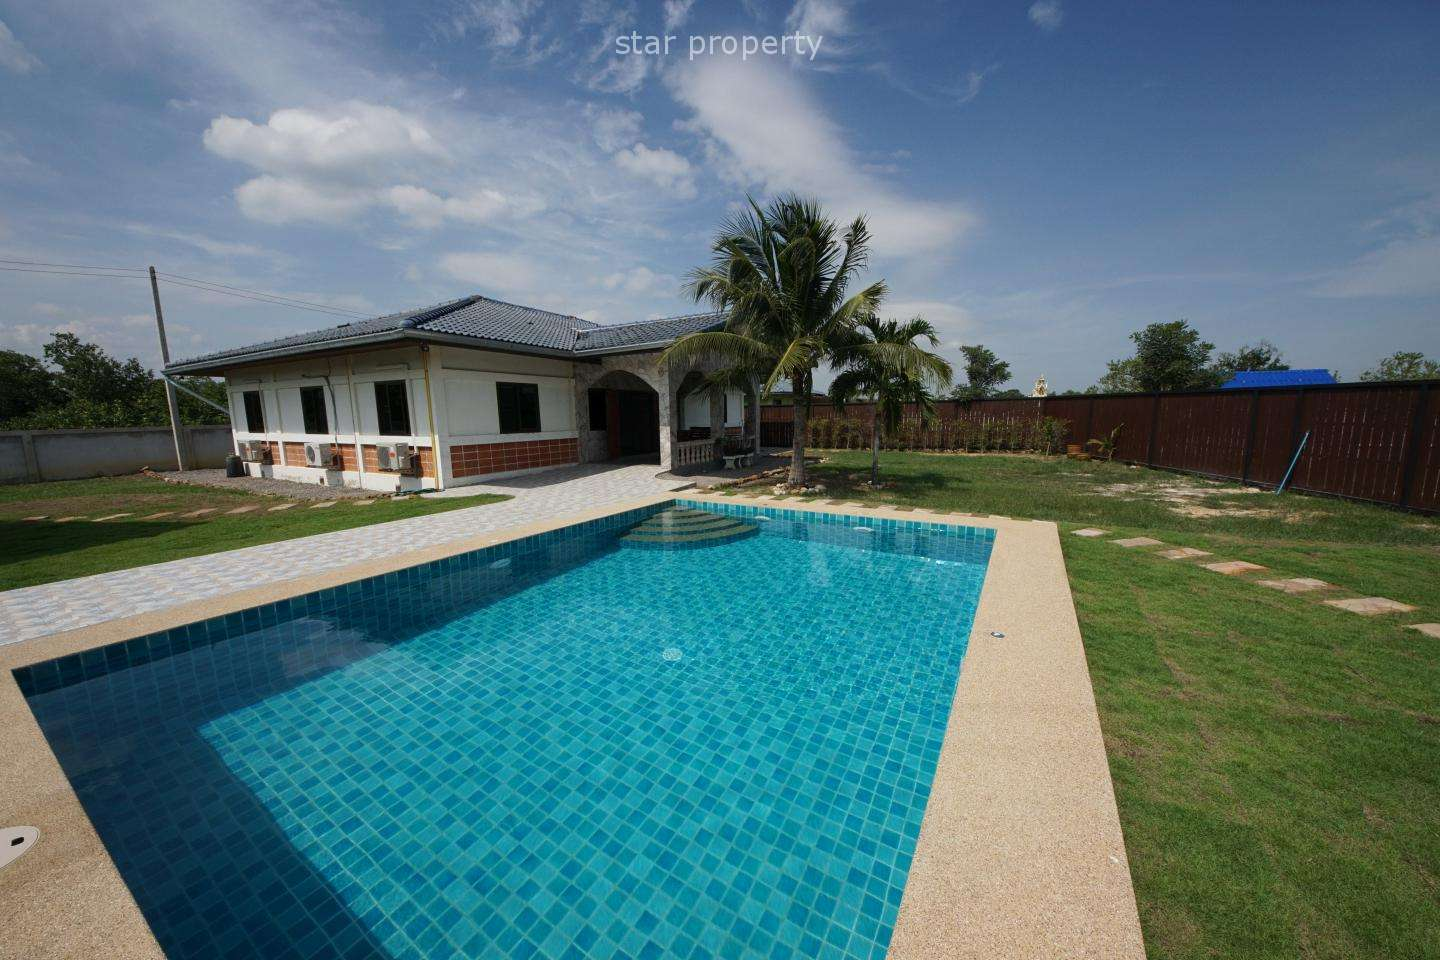 3 Bedroom Bungalow with Pool for Sale in Pranburi